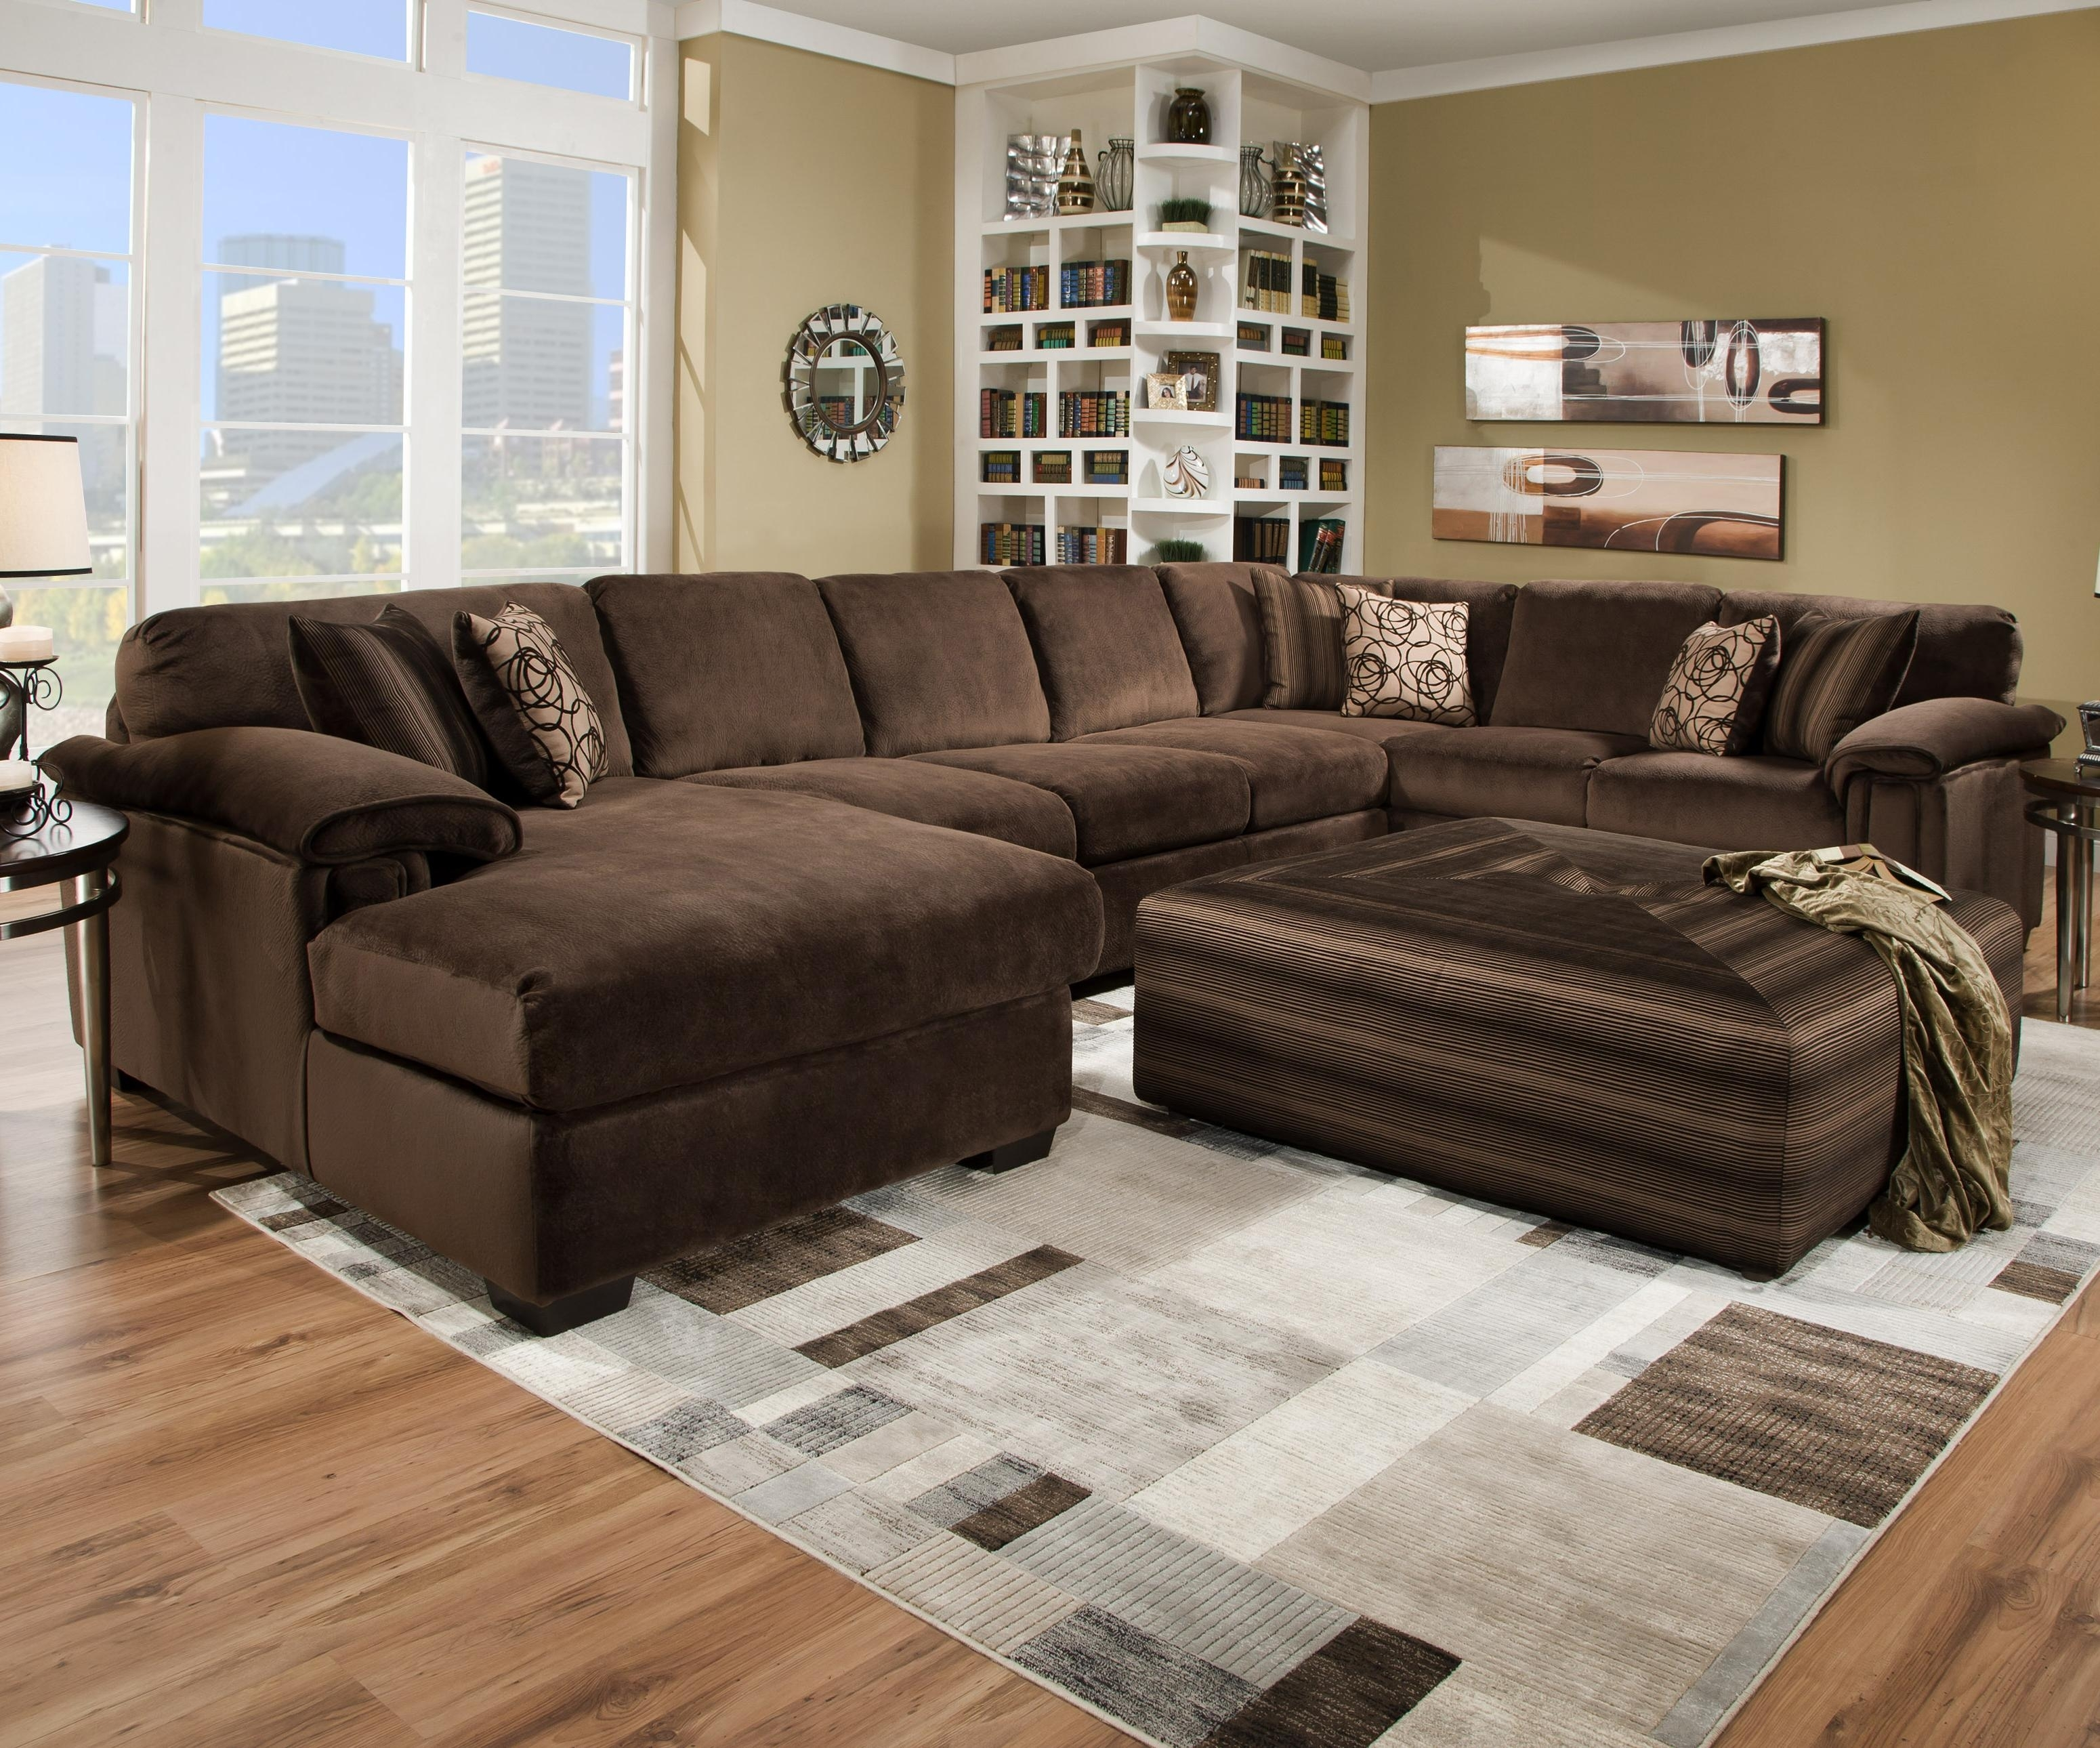 Oversized Ottoman Coffee Tables In Sectional Sofas With Oversized Ottoman (View 9 of 10)